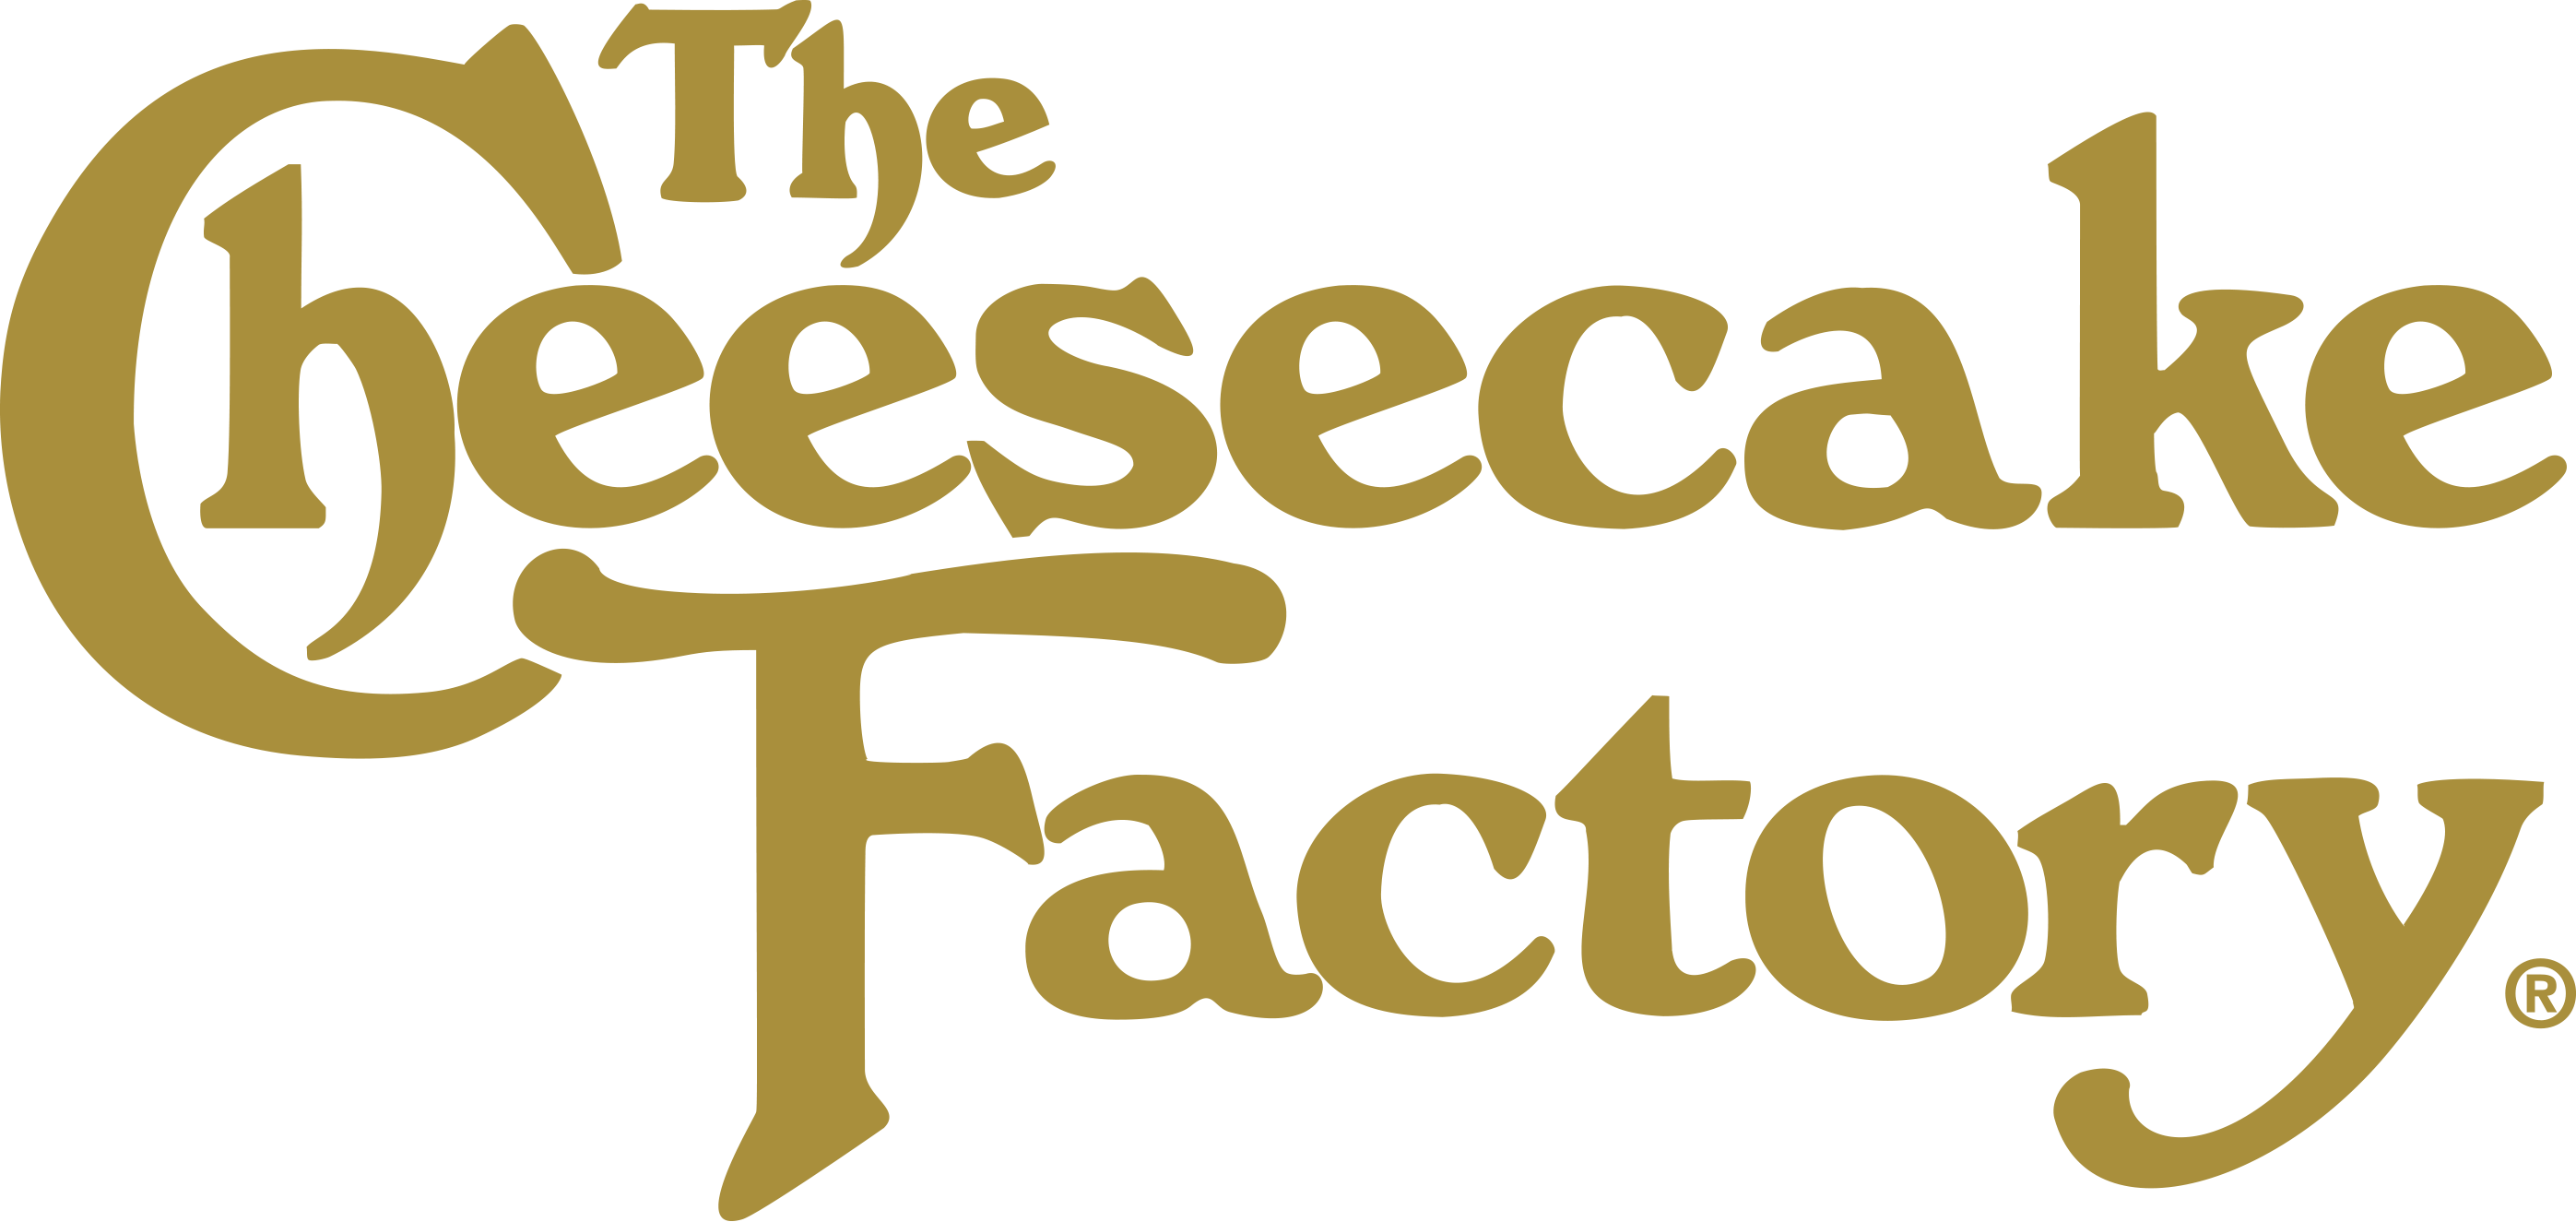 Cheesecake factory png. Mother s day at